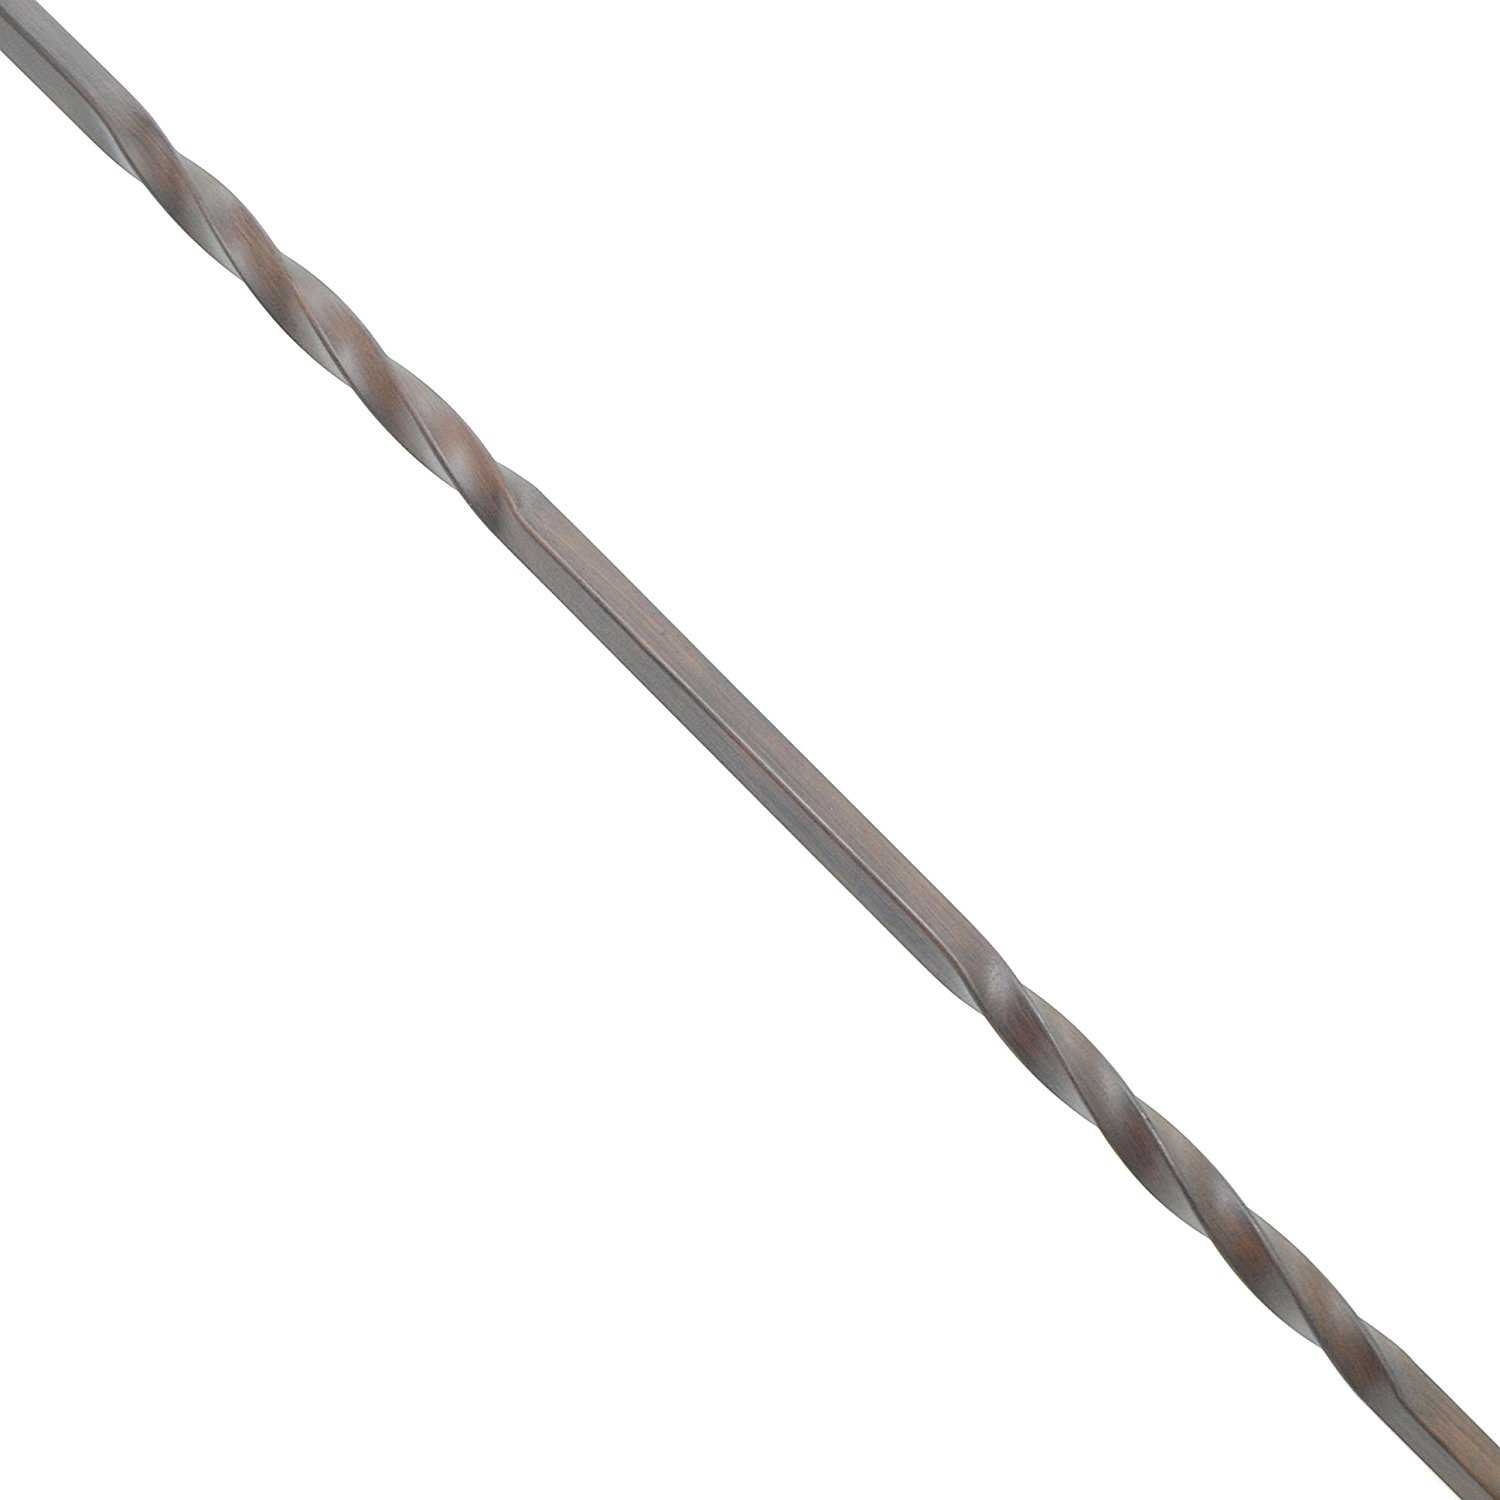 Aleko Oil Rubbed Bronze Baluster - 44-Inch - Double Twist Design - Pack of 10